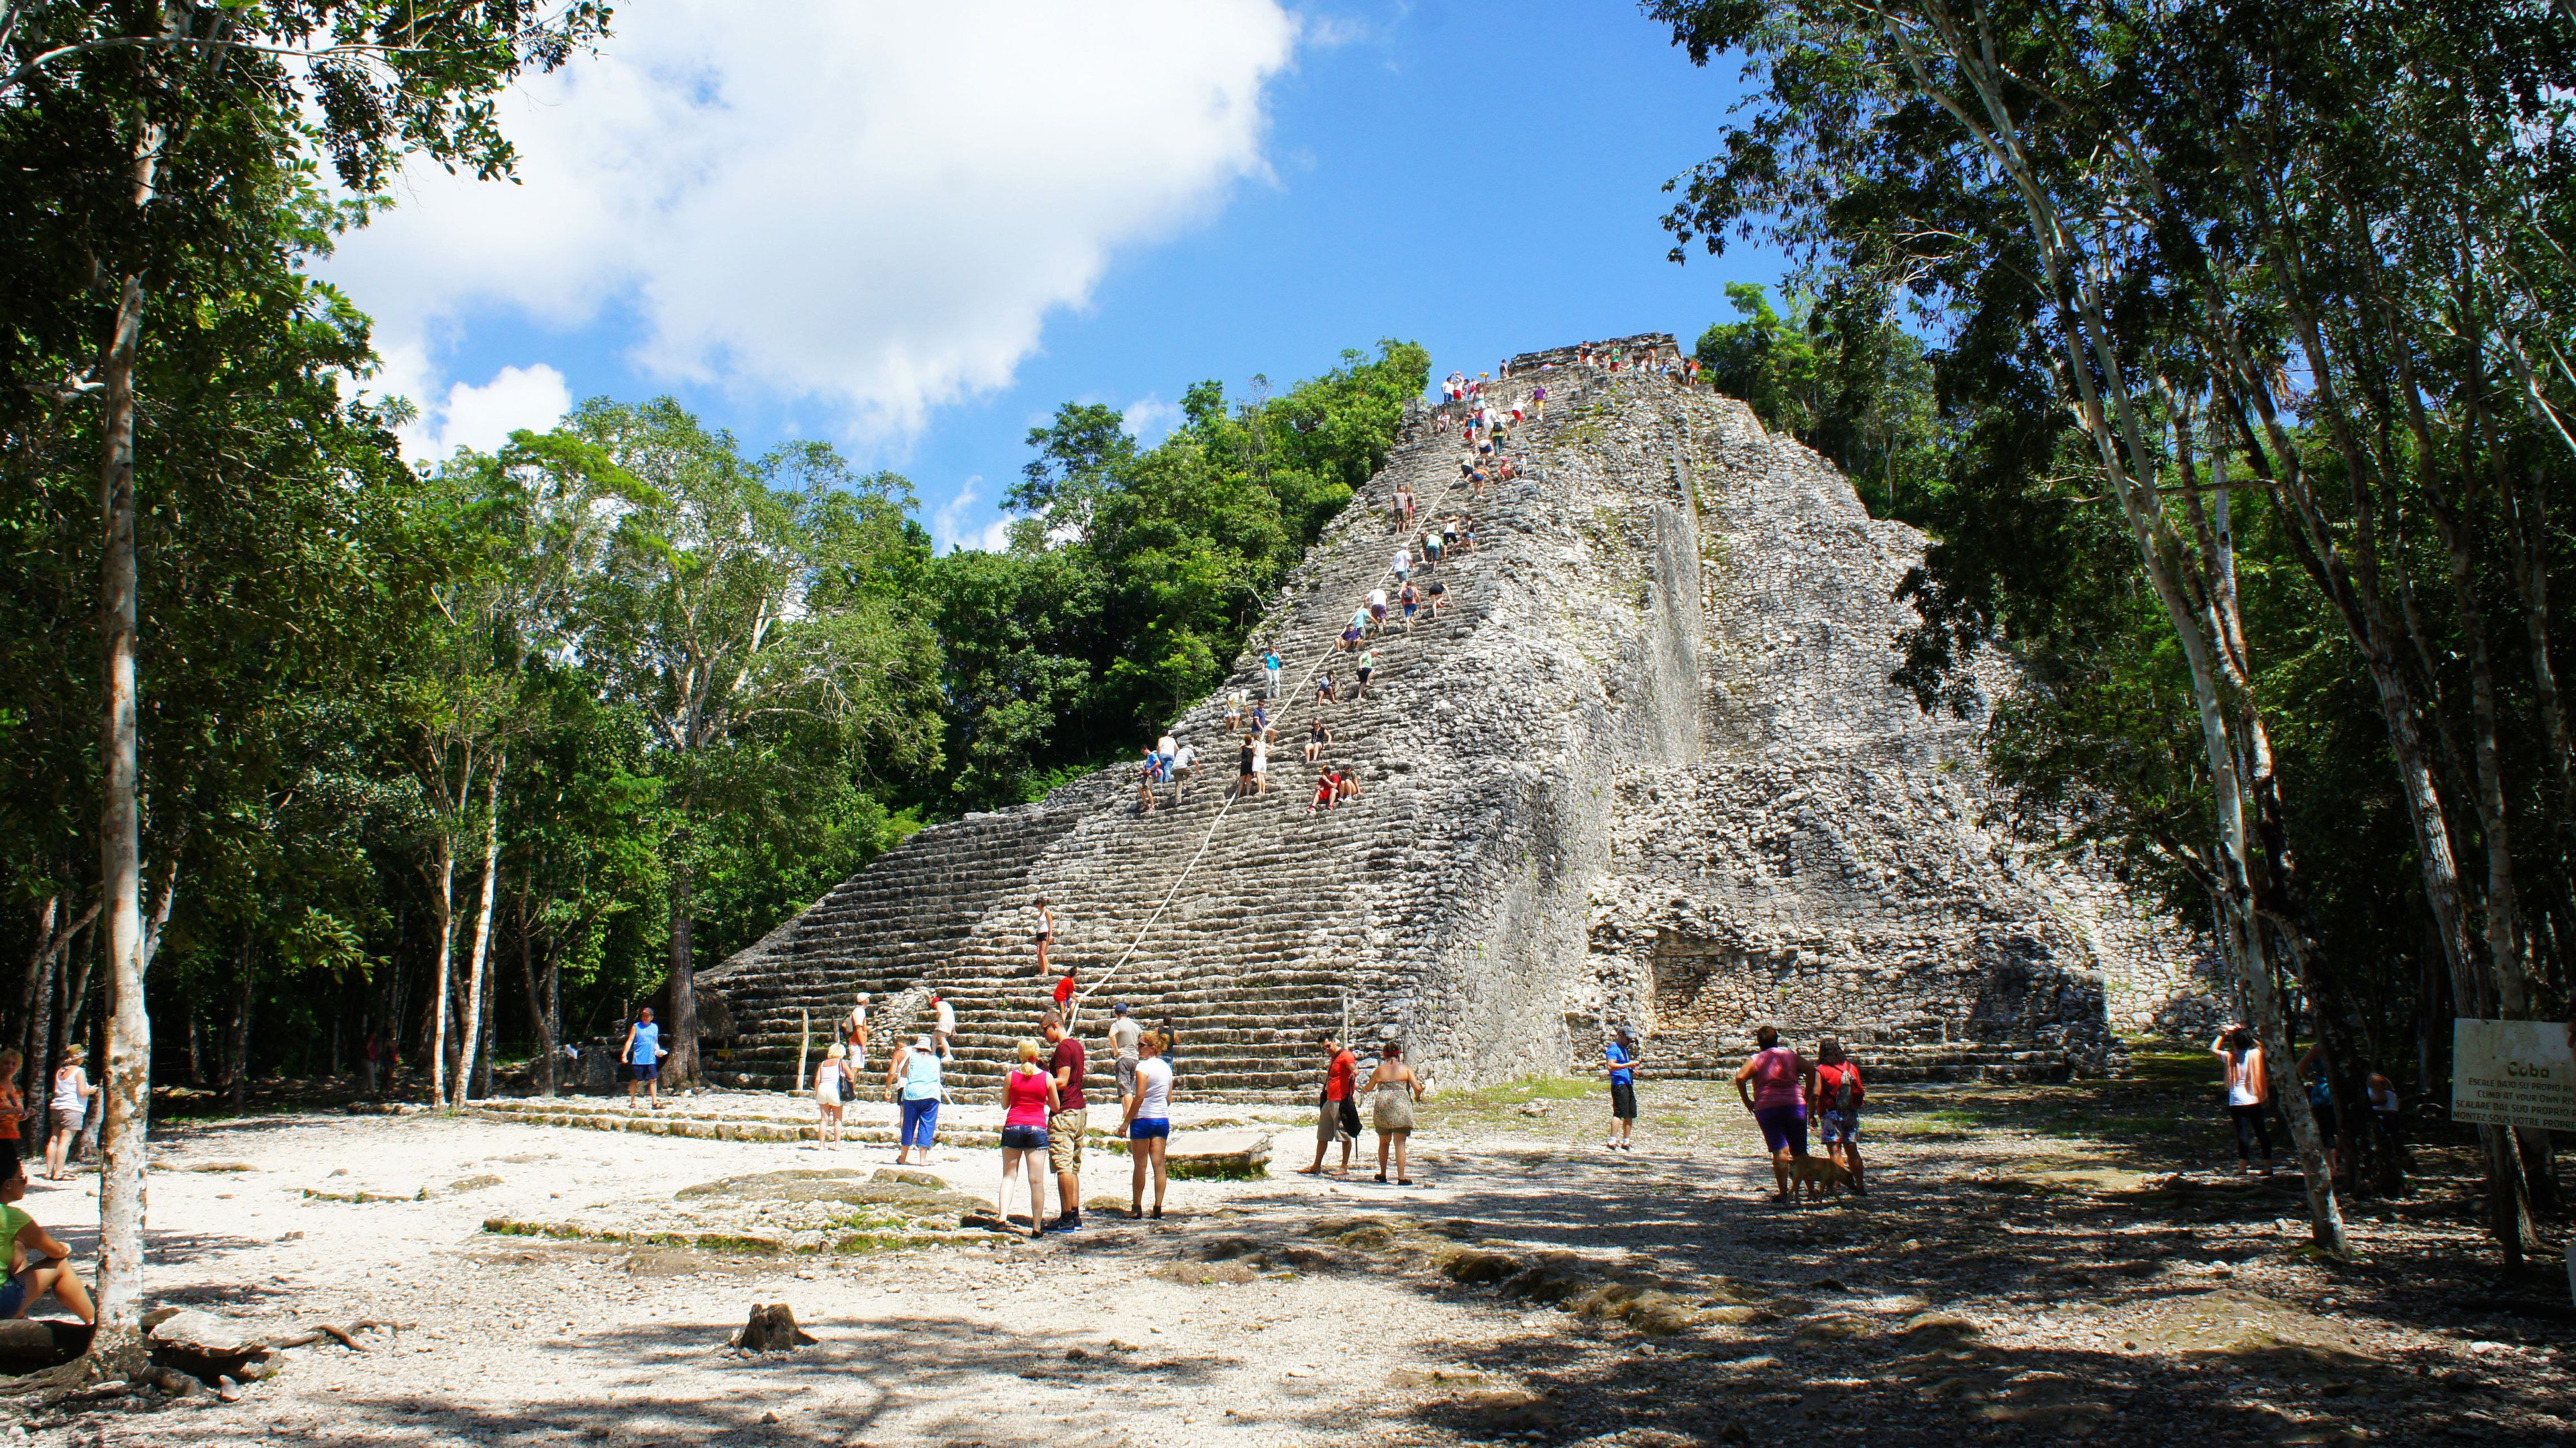 Tourists at temple ruins in Tulum